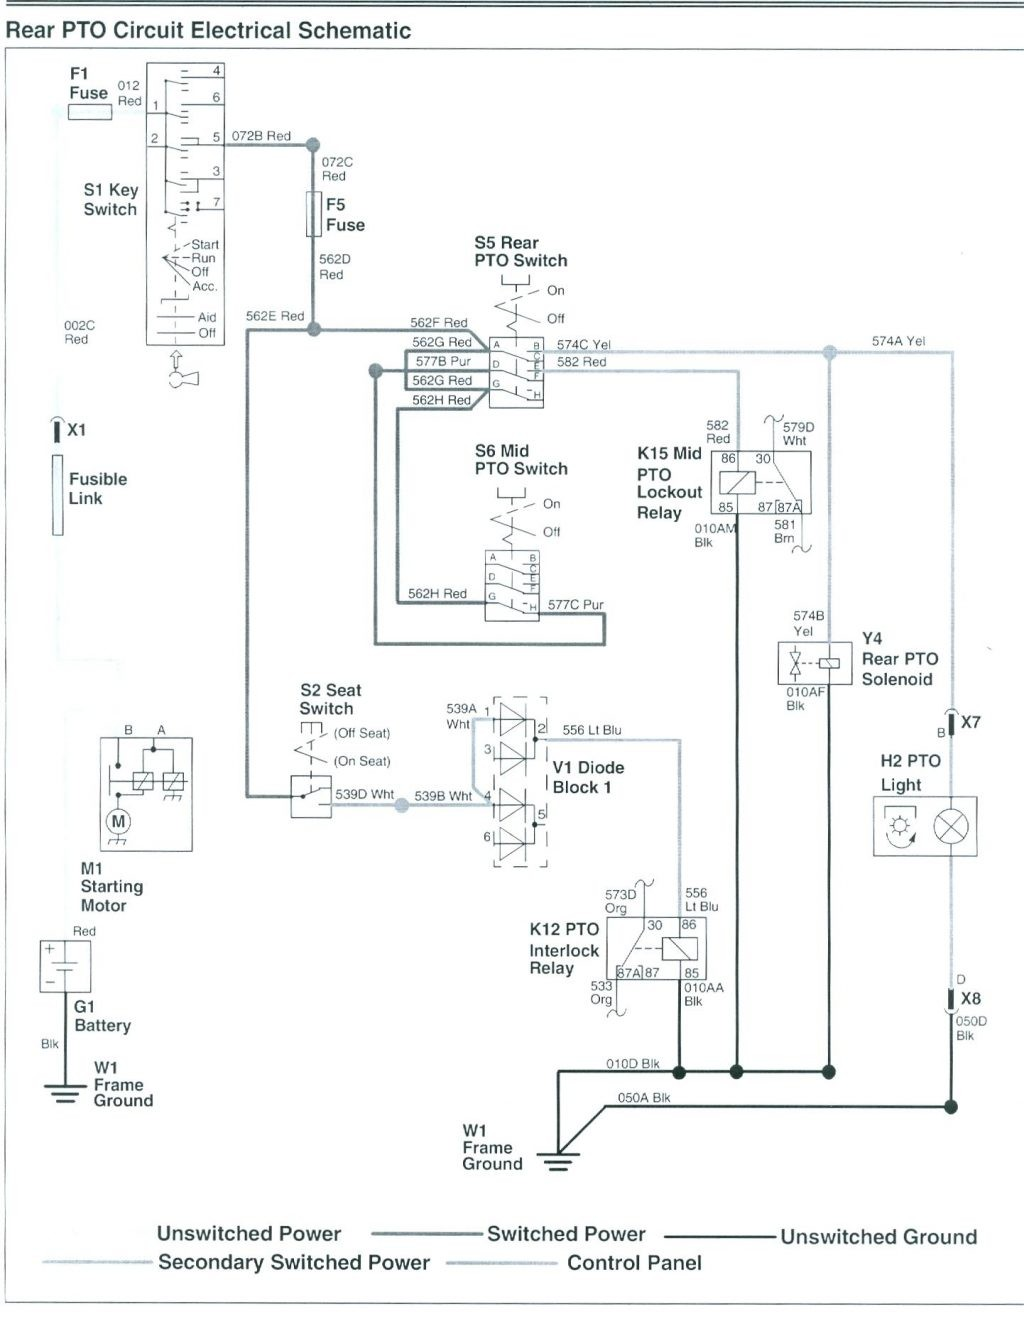 John Deere Lt155 Wiring Schematic Diagrams Gator Hpx Diagram Together With Z225 Electrical